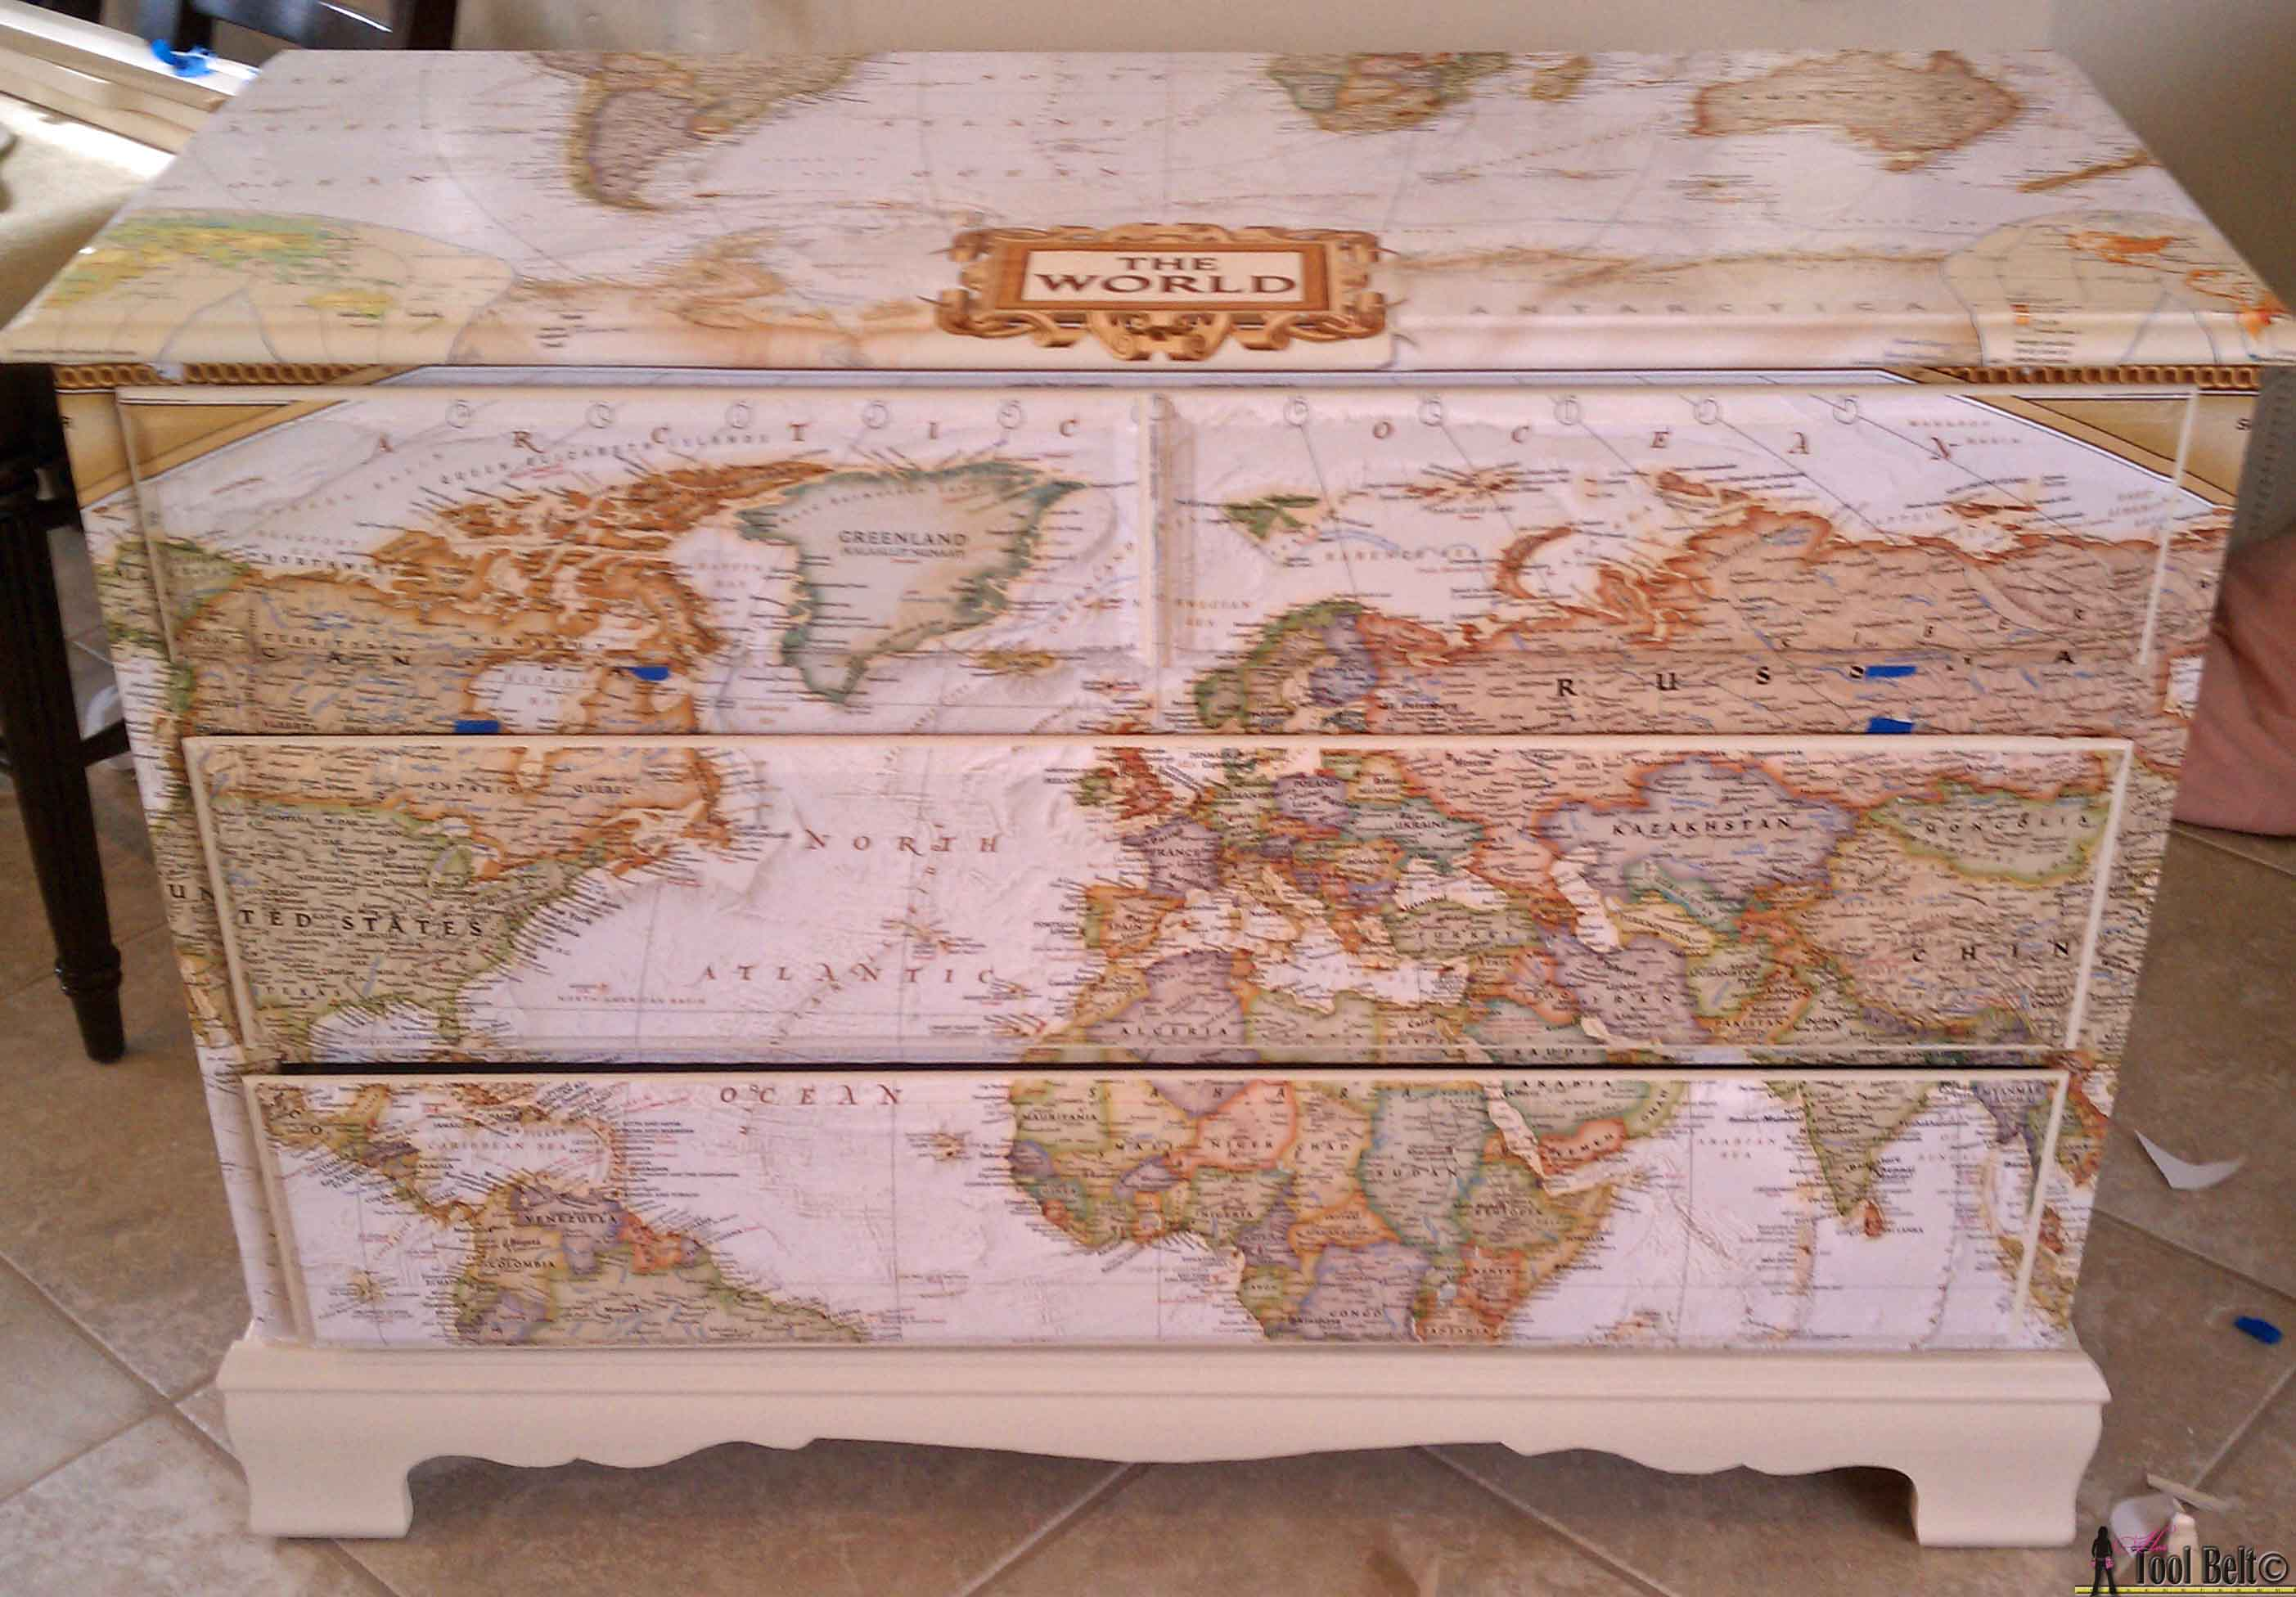 Make Over An Old Dresser Into A Unique Travel Theme Map With And Once The Mod Podge